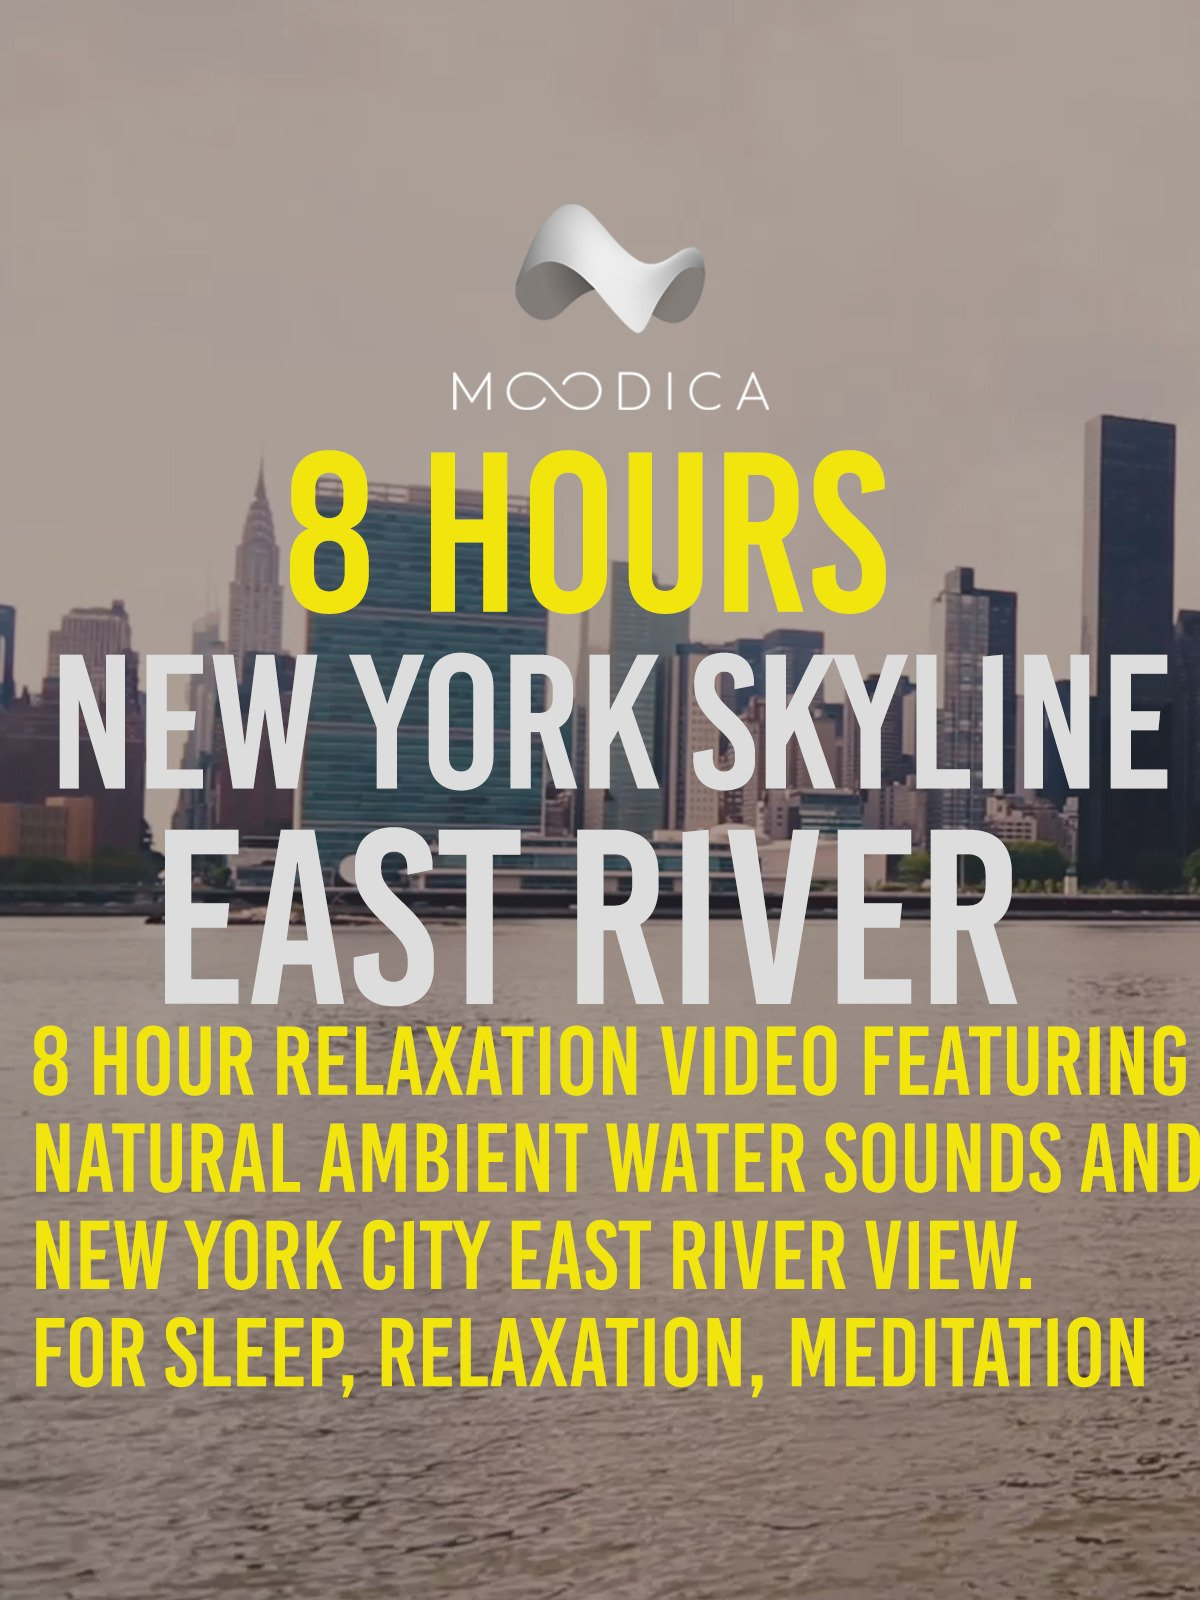 8 Hours: New York Skyline: East River: 8 Hour Relaxation Video Featuring Natural Ambient Water Sounds and New York City East River View. For Sleep, Relaxation, Meditation